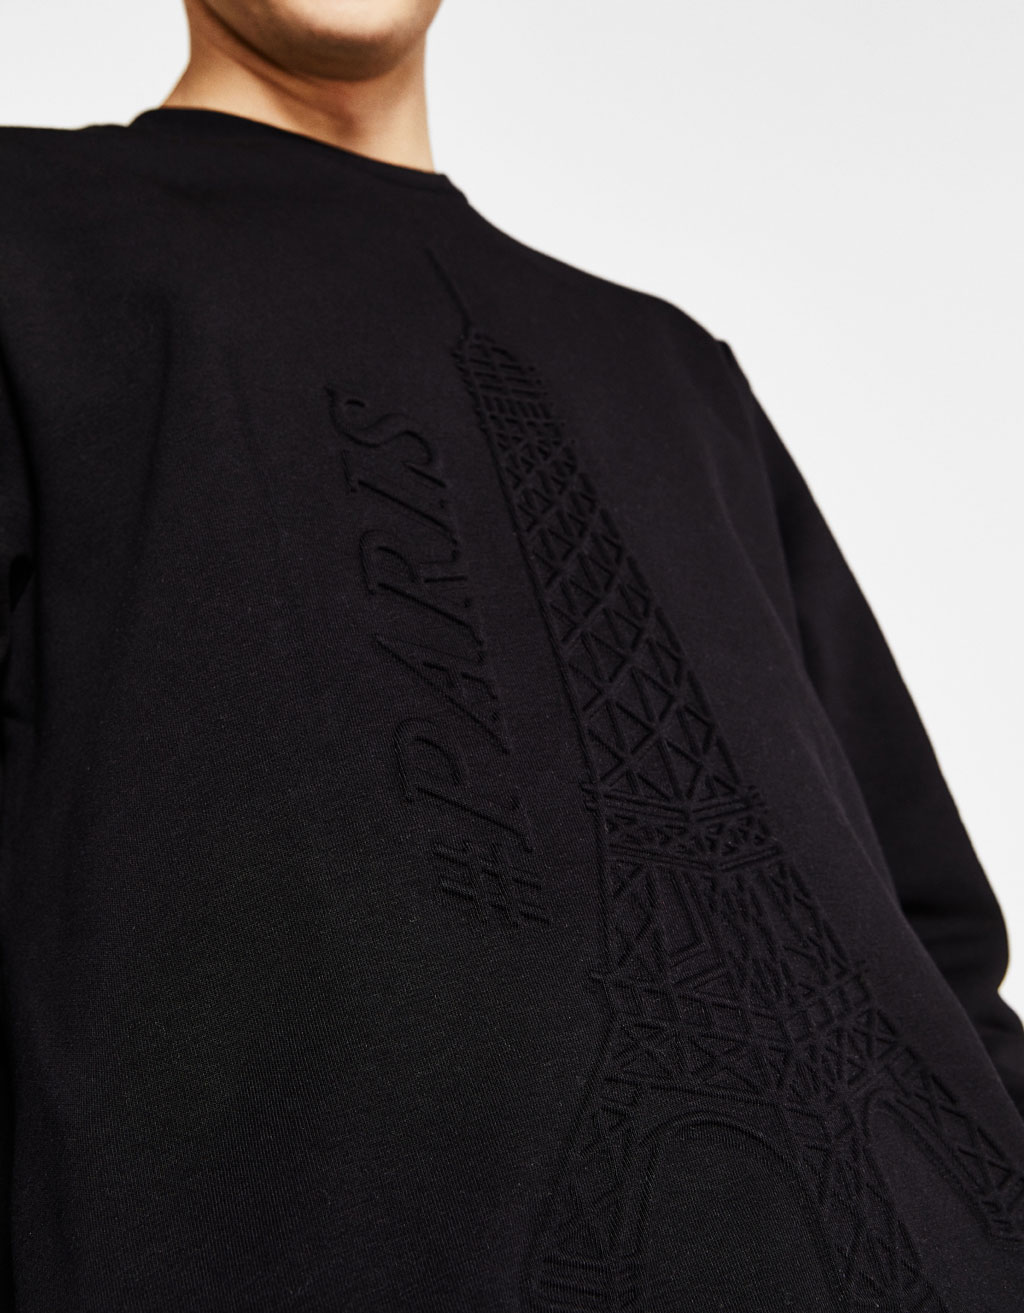 Sweatshirt with raised cities design